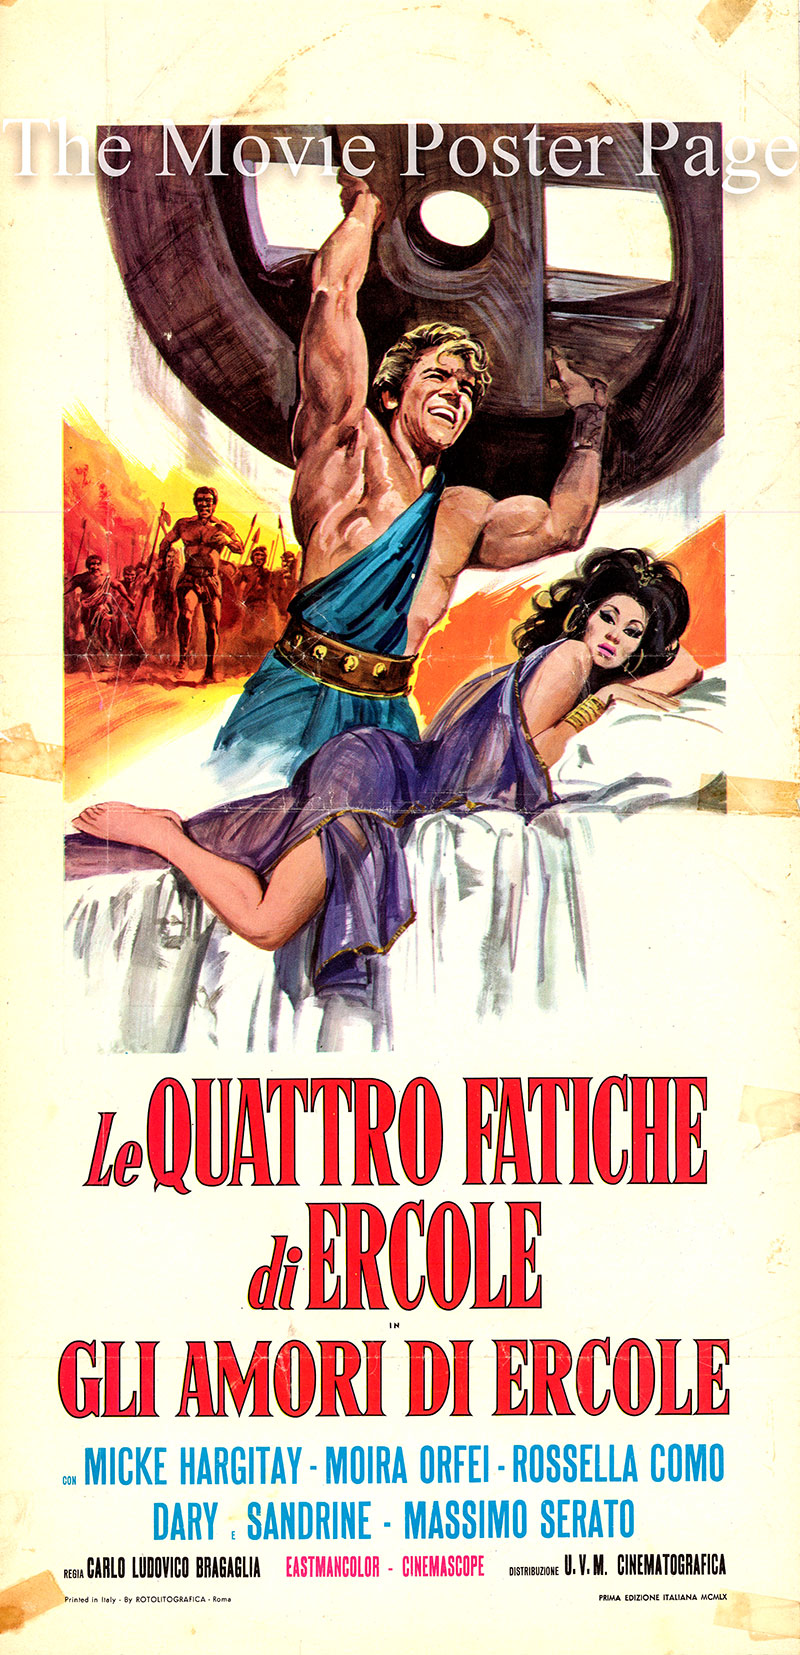 Pictured is an Italian locandina poster for the 1960 Carlo Ludovico Bragaglia film The Loves of Hercules, starring Jayne Mansfield as Queen Dianira.